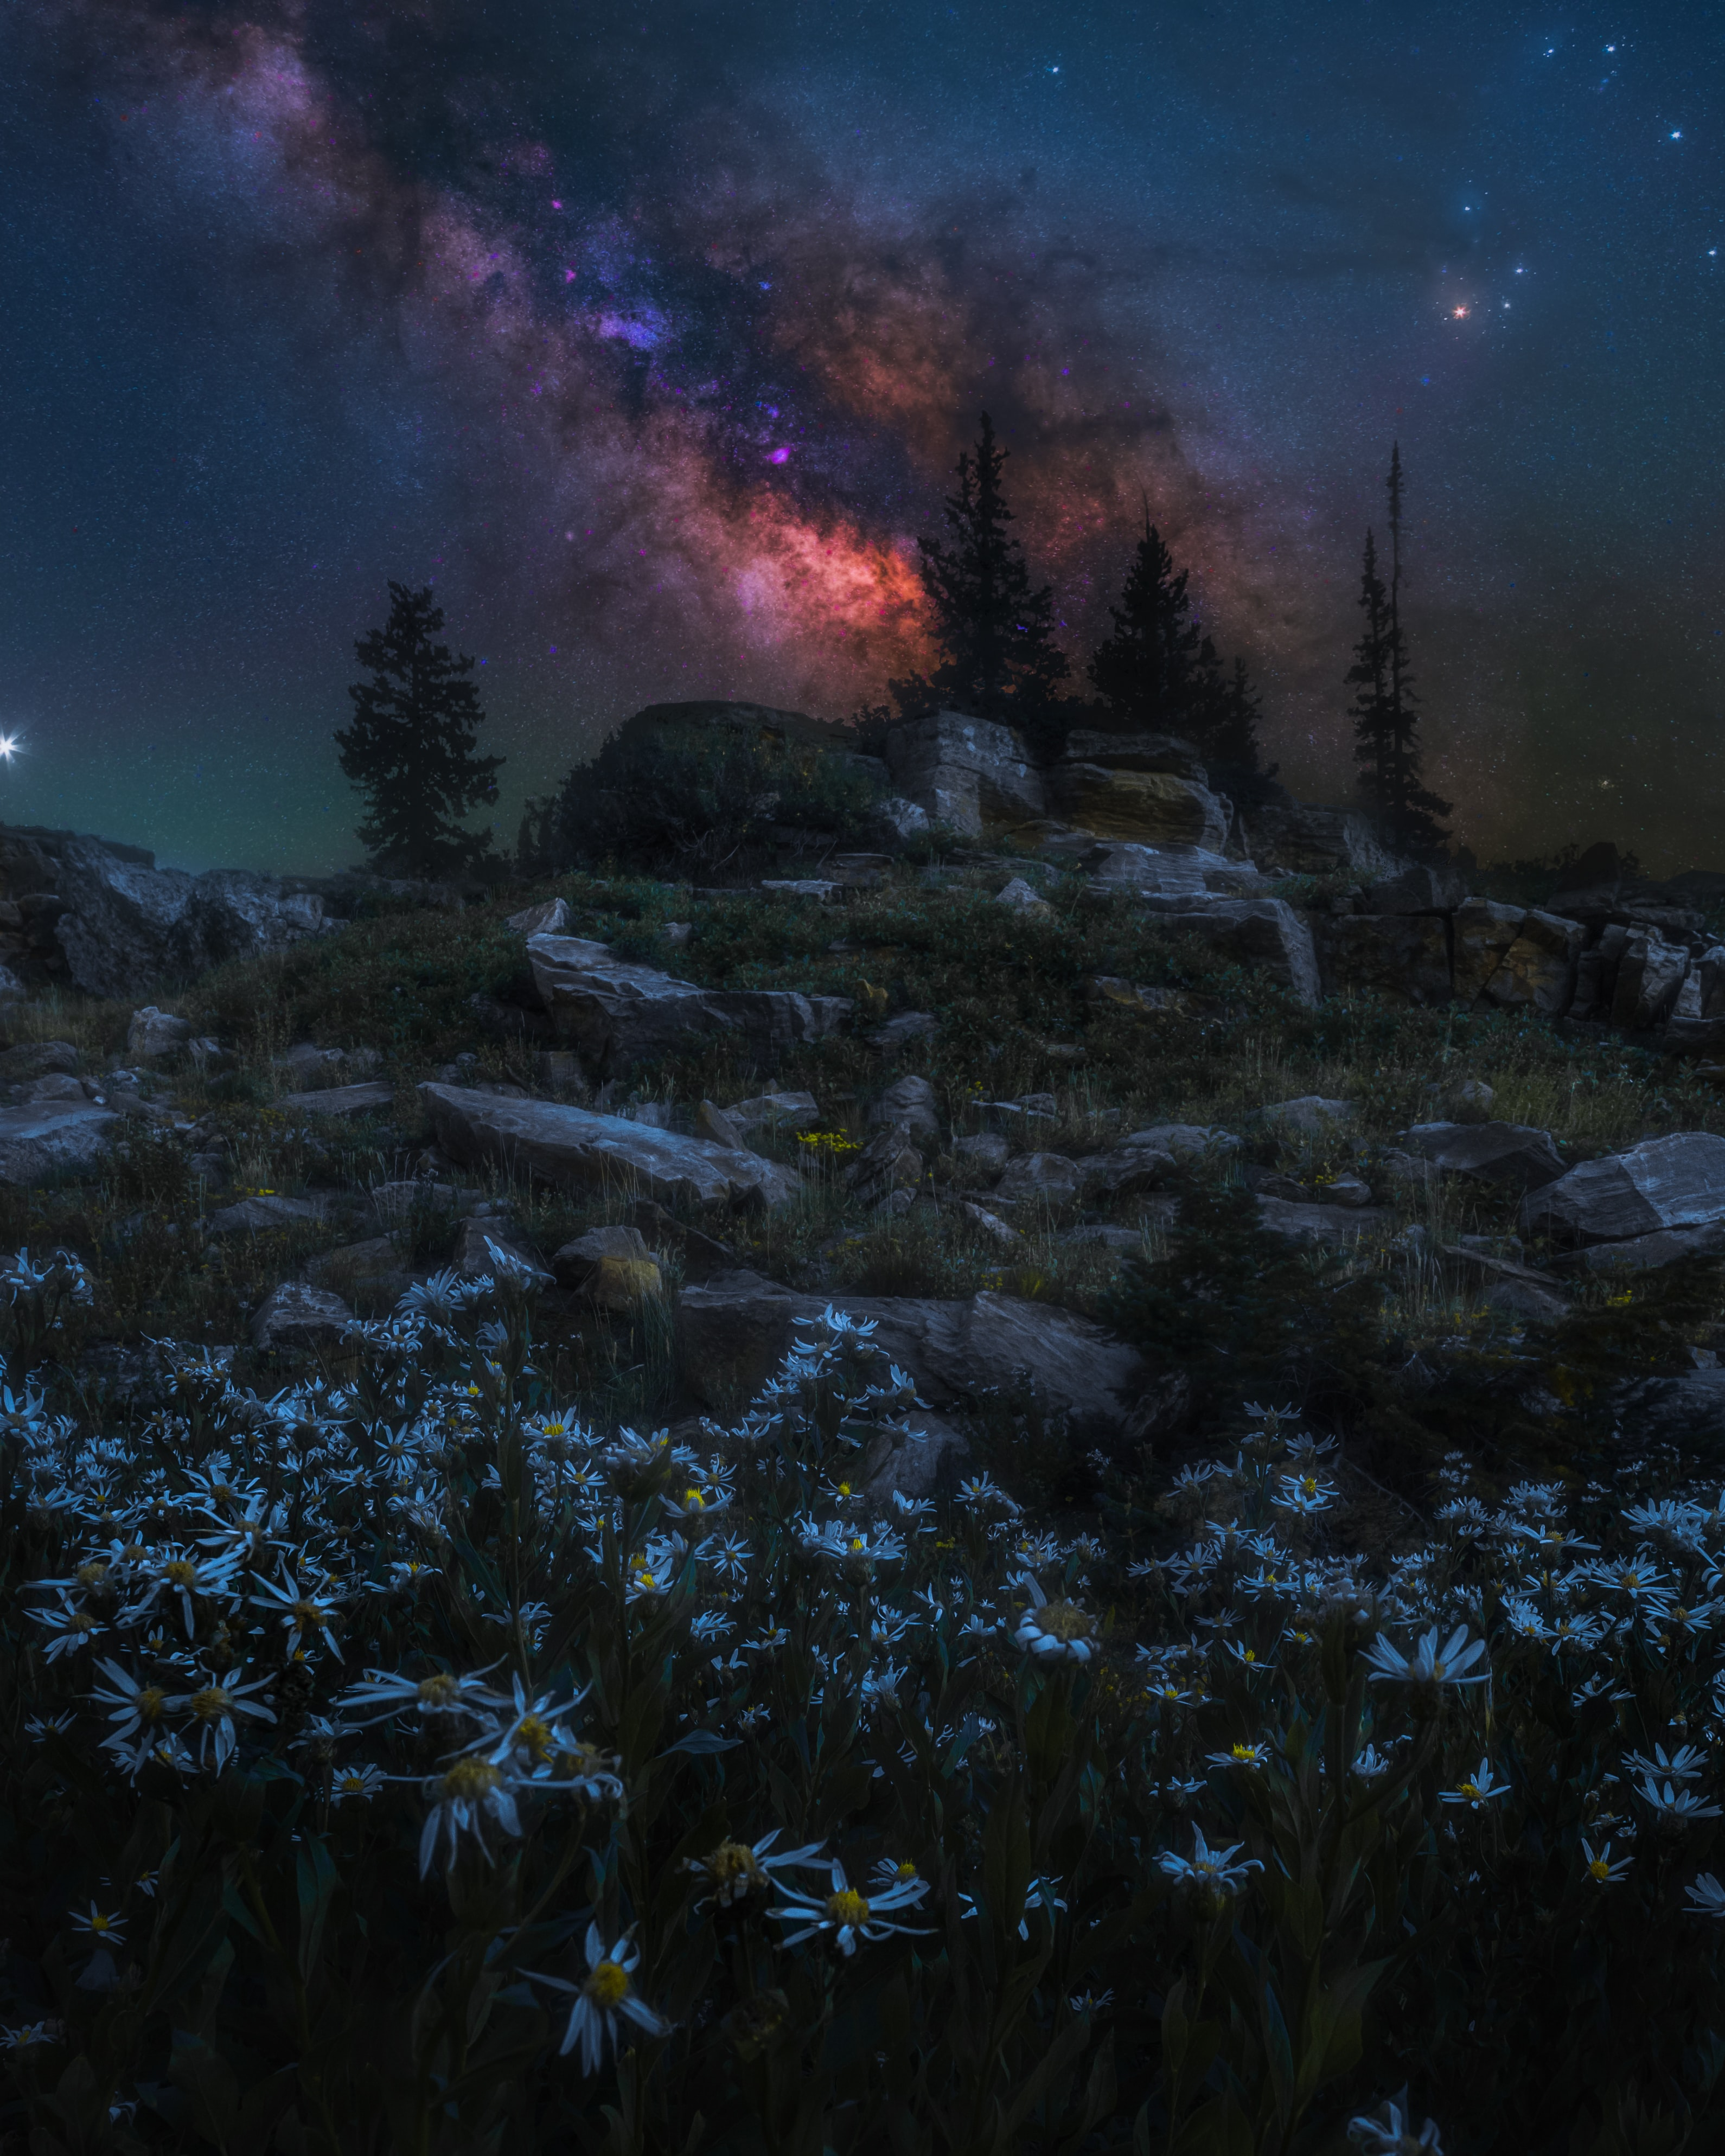 125005 download wallpaper Dark, Nebula, Trees, Camomile, Rocks, Night screensavers and pictures for free